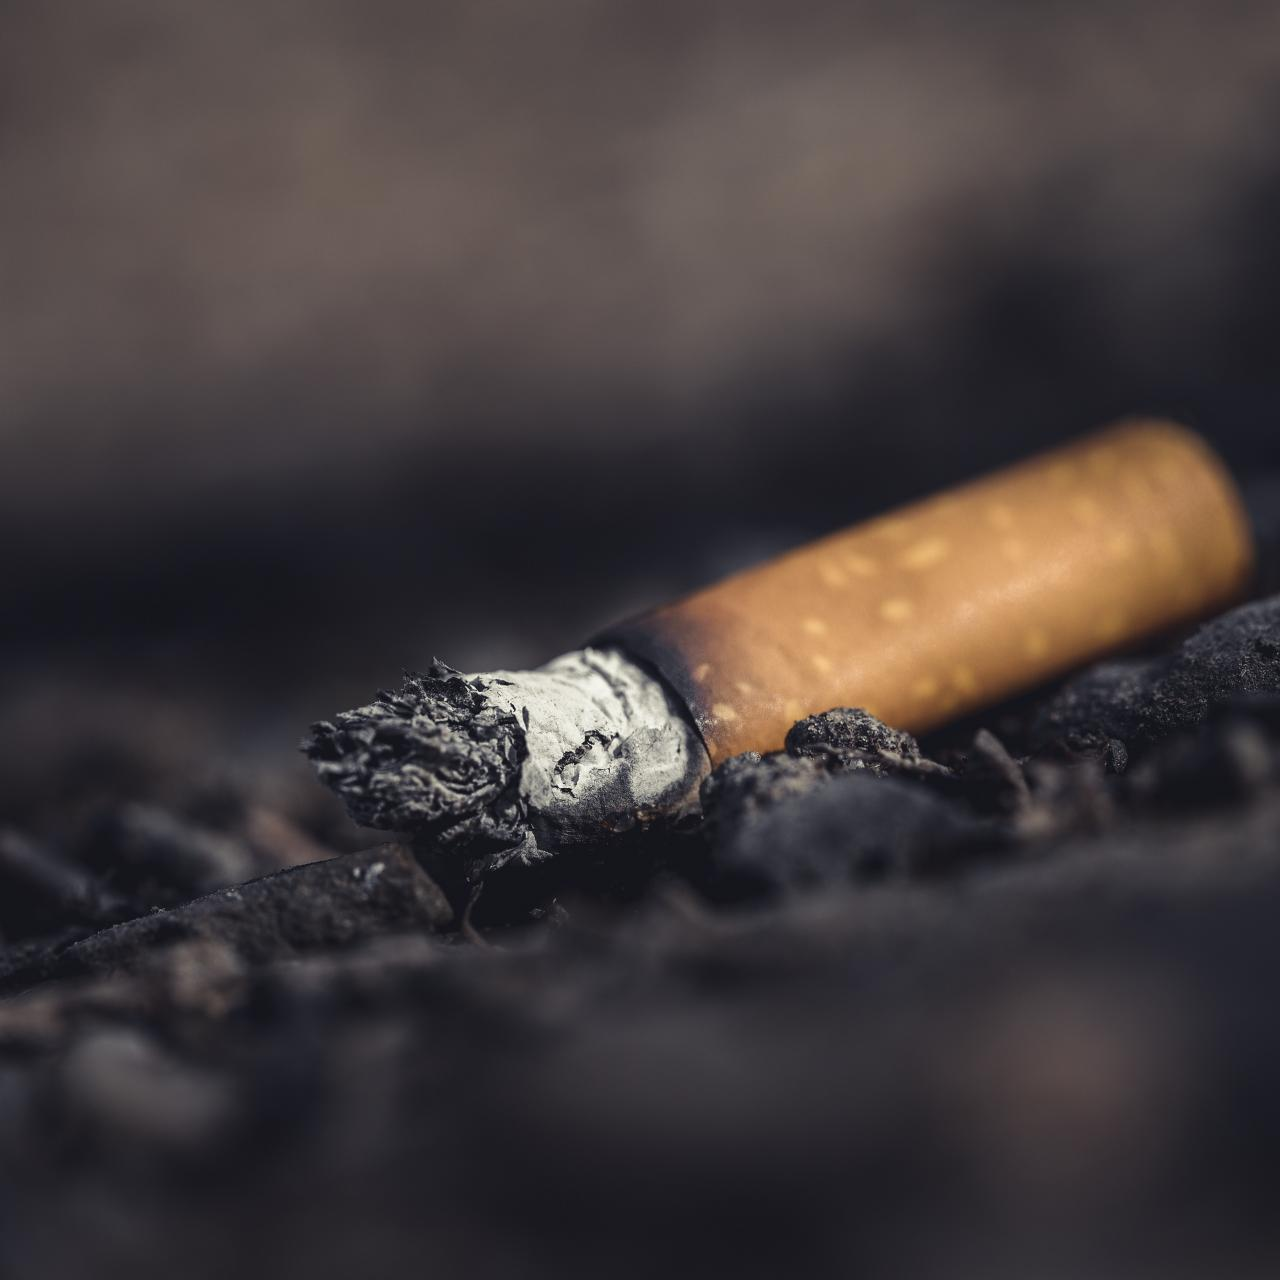 7 terrible dangers of smoking for health